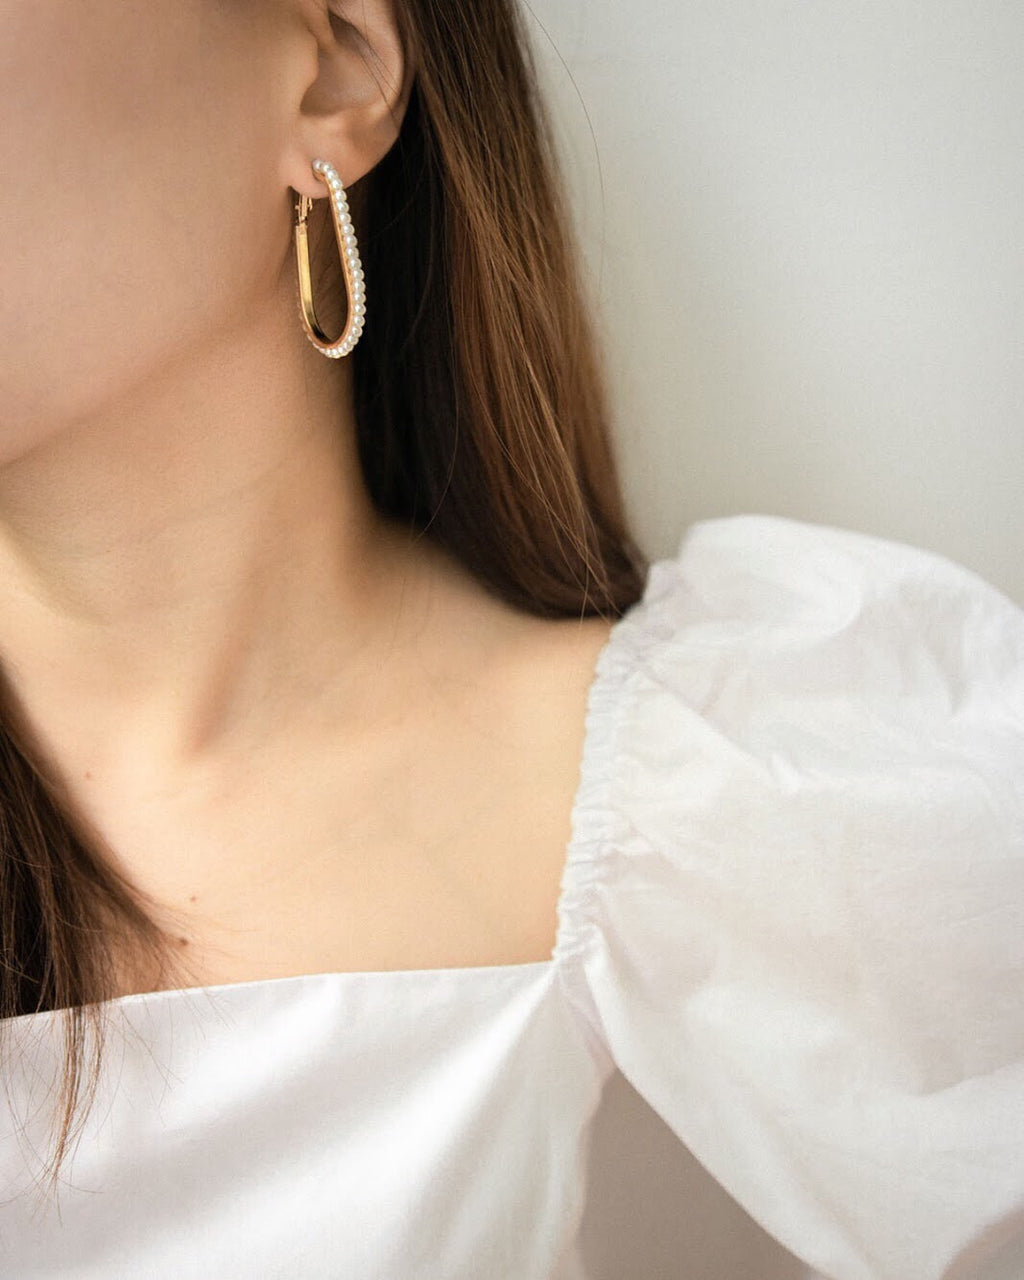 Audrey Hepburn inspired elegant hoop earrings with pearls - The Hexad Jewelry